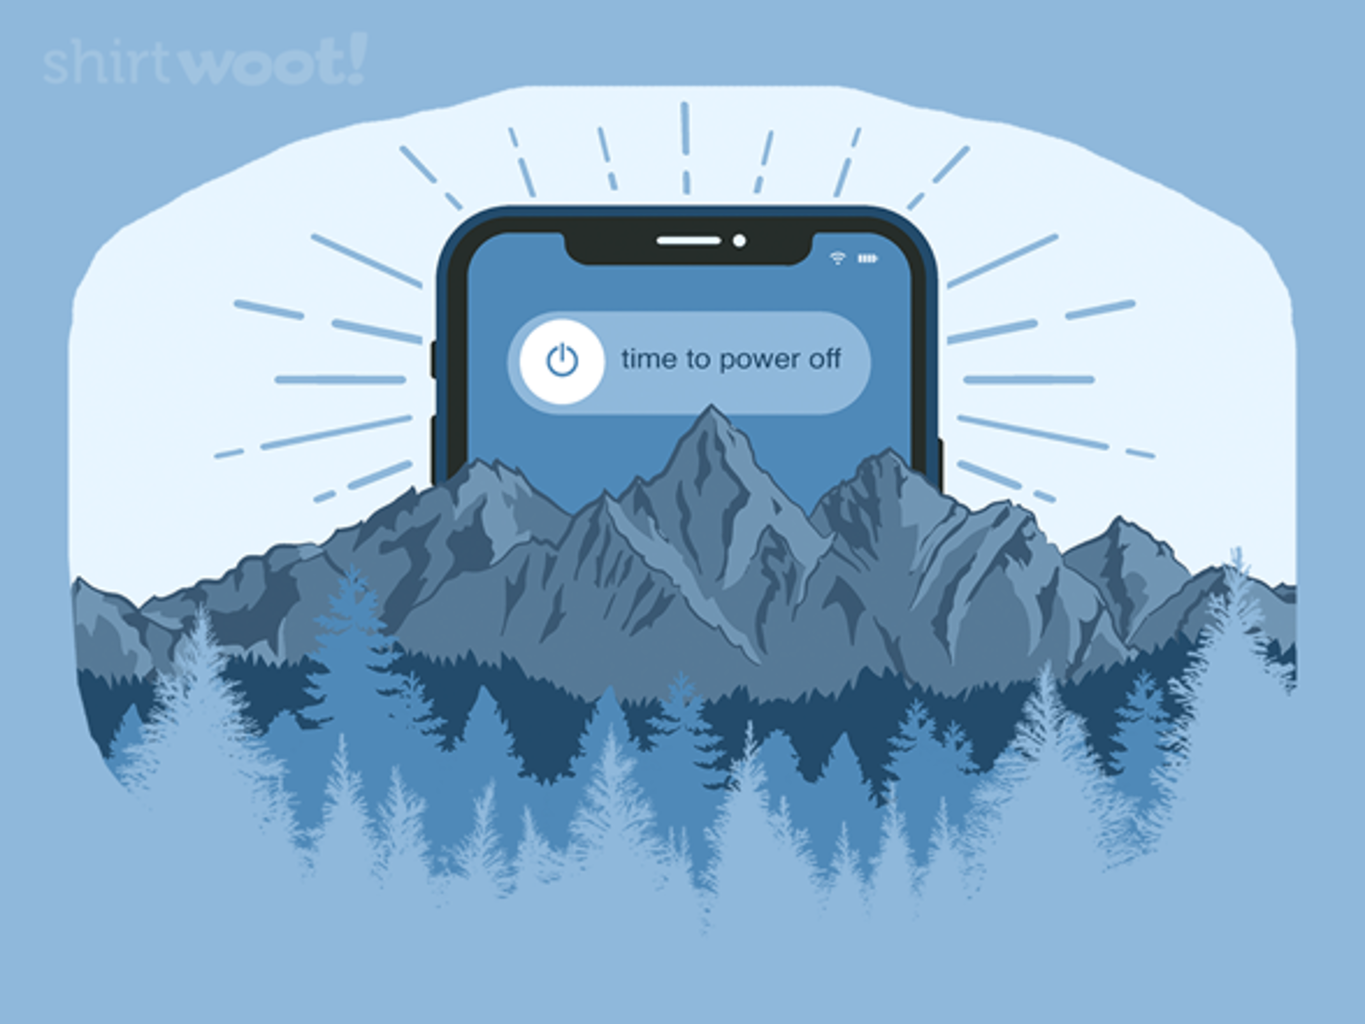 Woot!: Turn Off